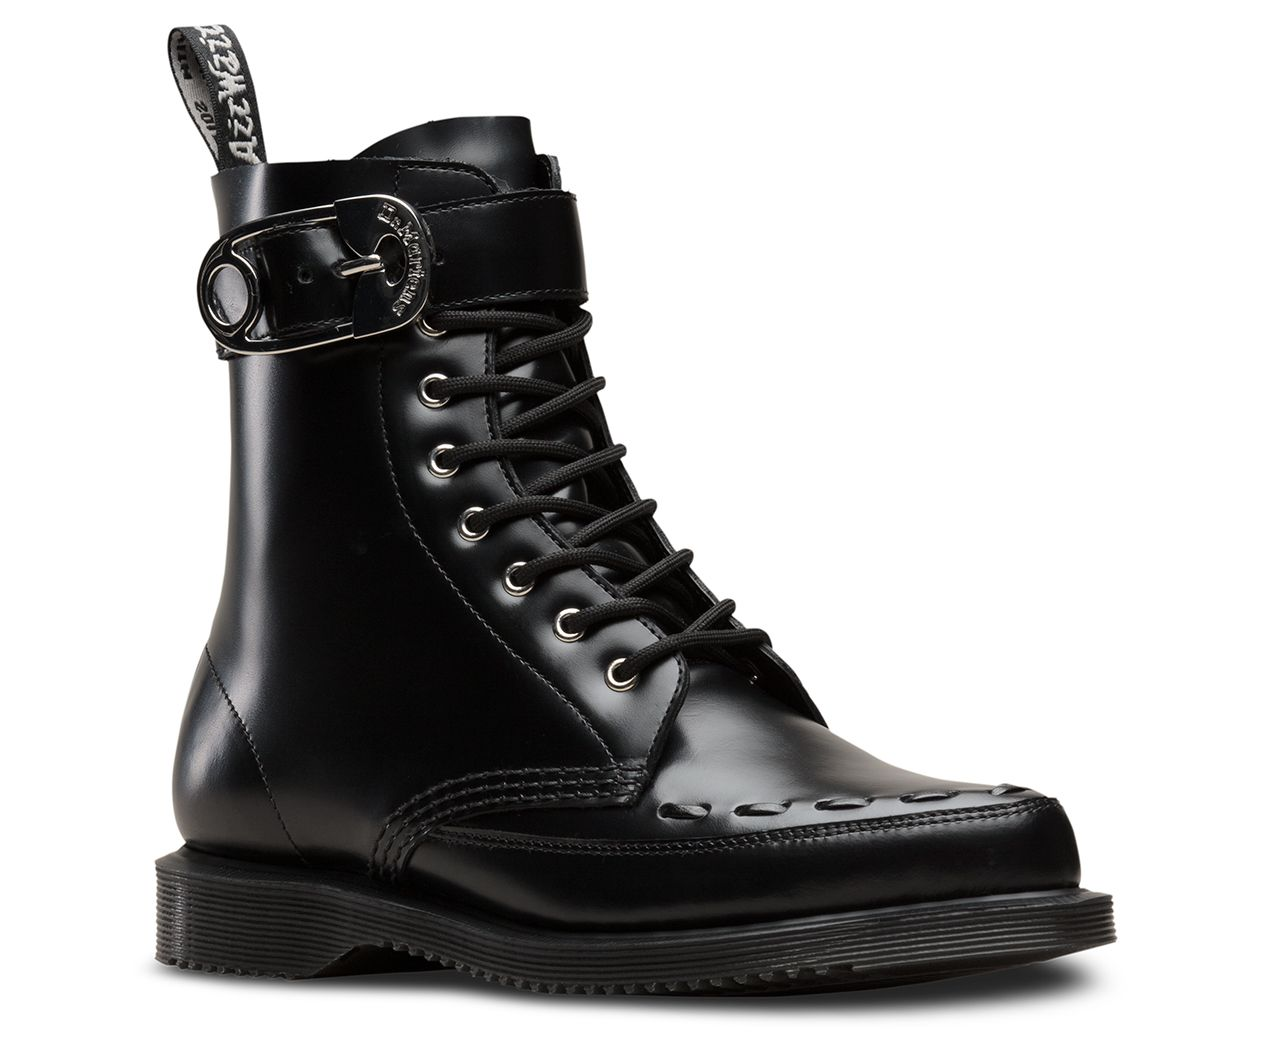 6abb8c936 The Geordin is a slim 8-eye boot blending sophisticated style with tons of  classic Docs attitude — thanks to punk-inspired details like a pointed  Creeper ...